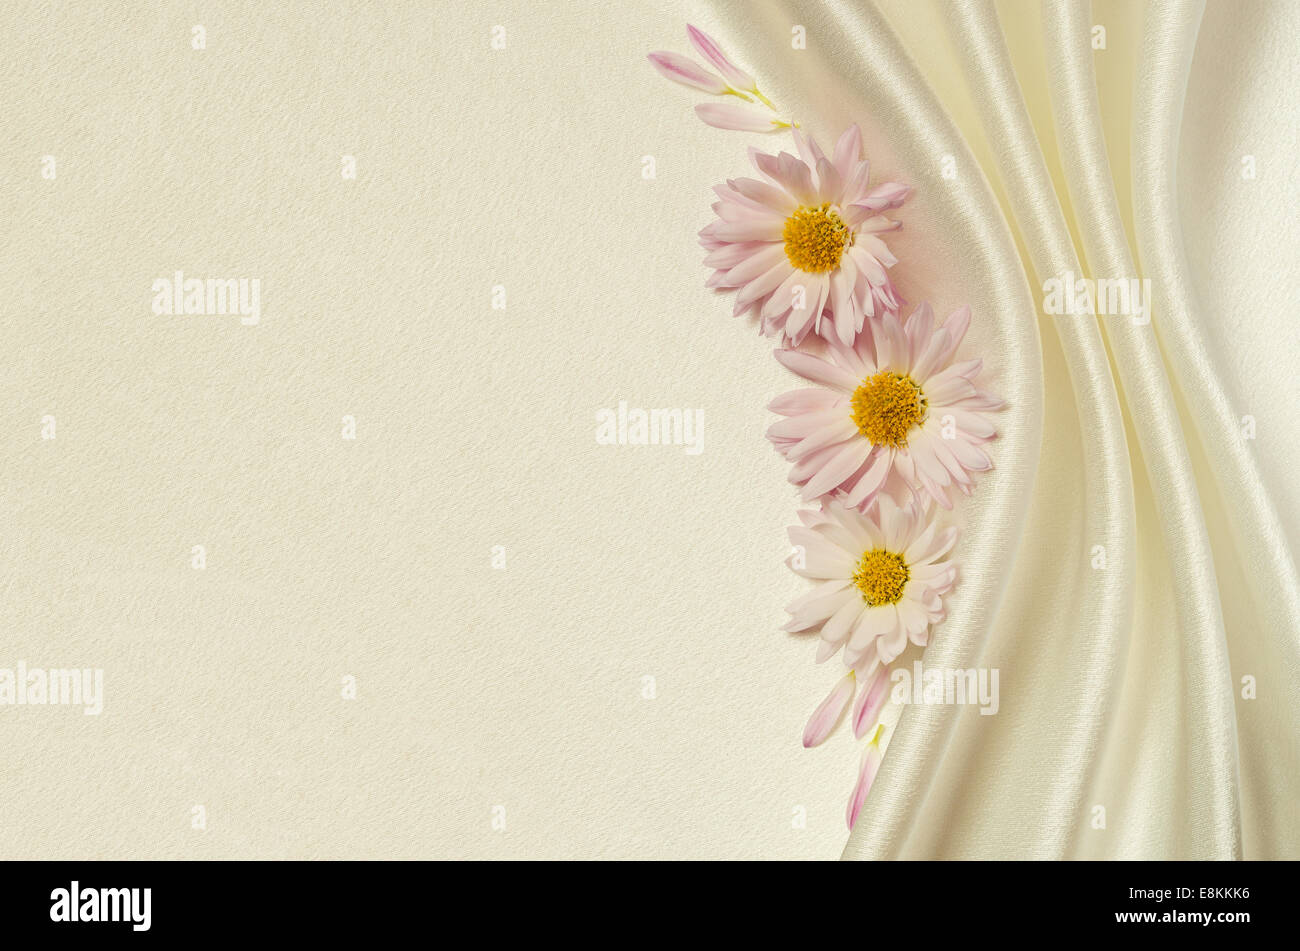 White satin background with asters and folds - Stock Image